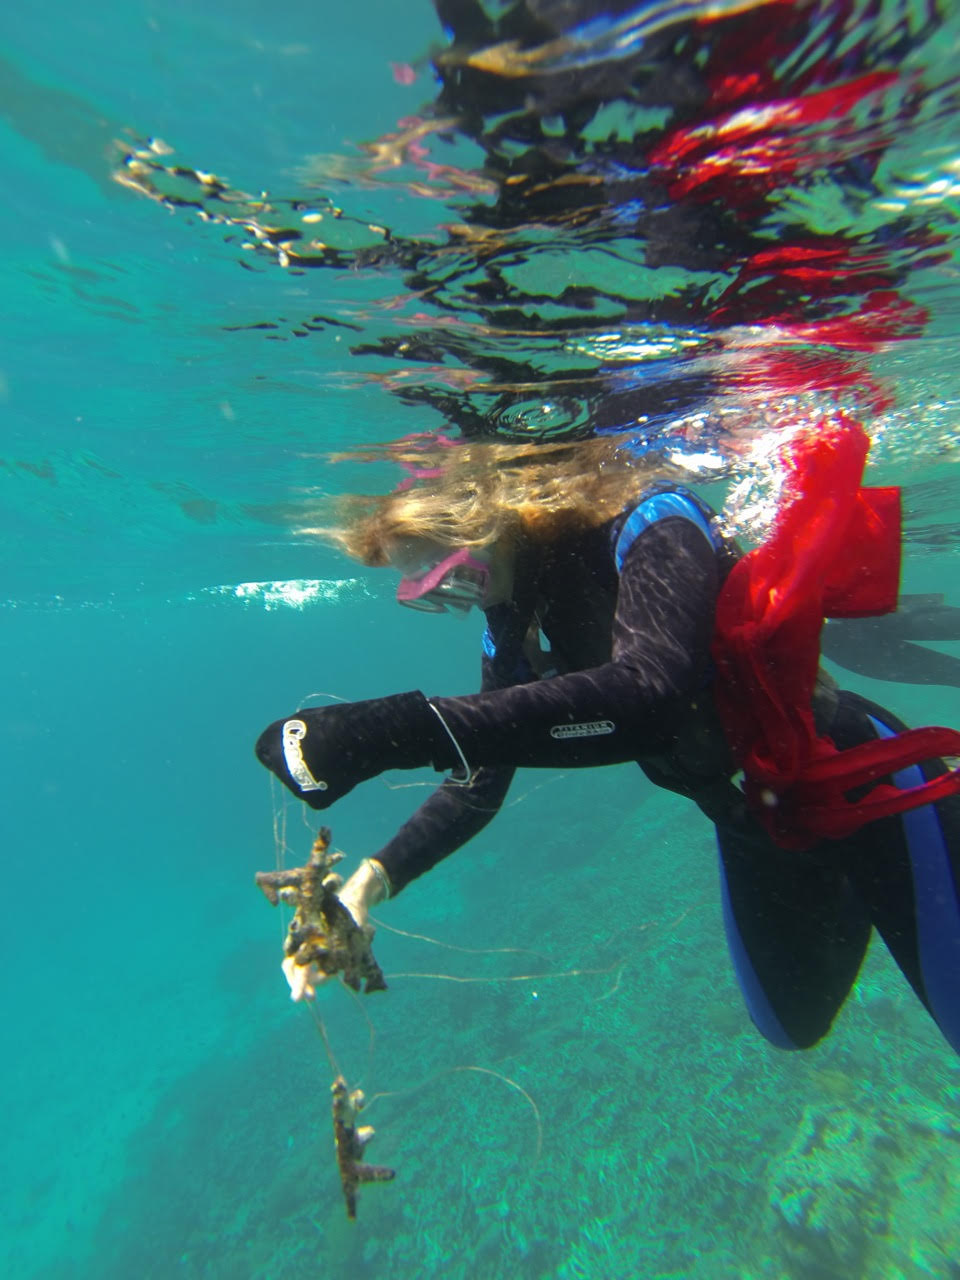 Removing fishing line from coral. Photo by Amir Using